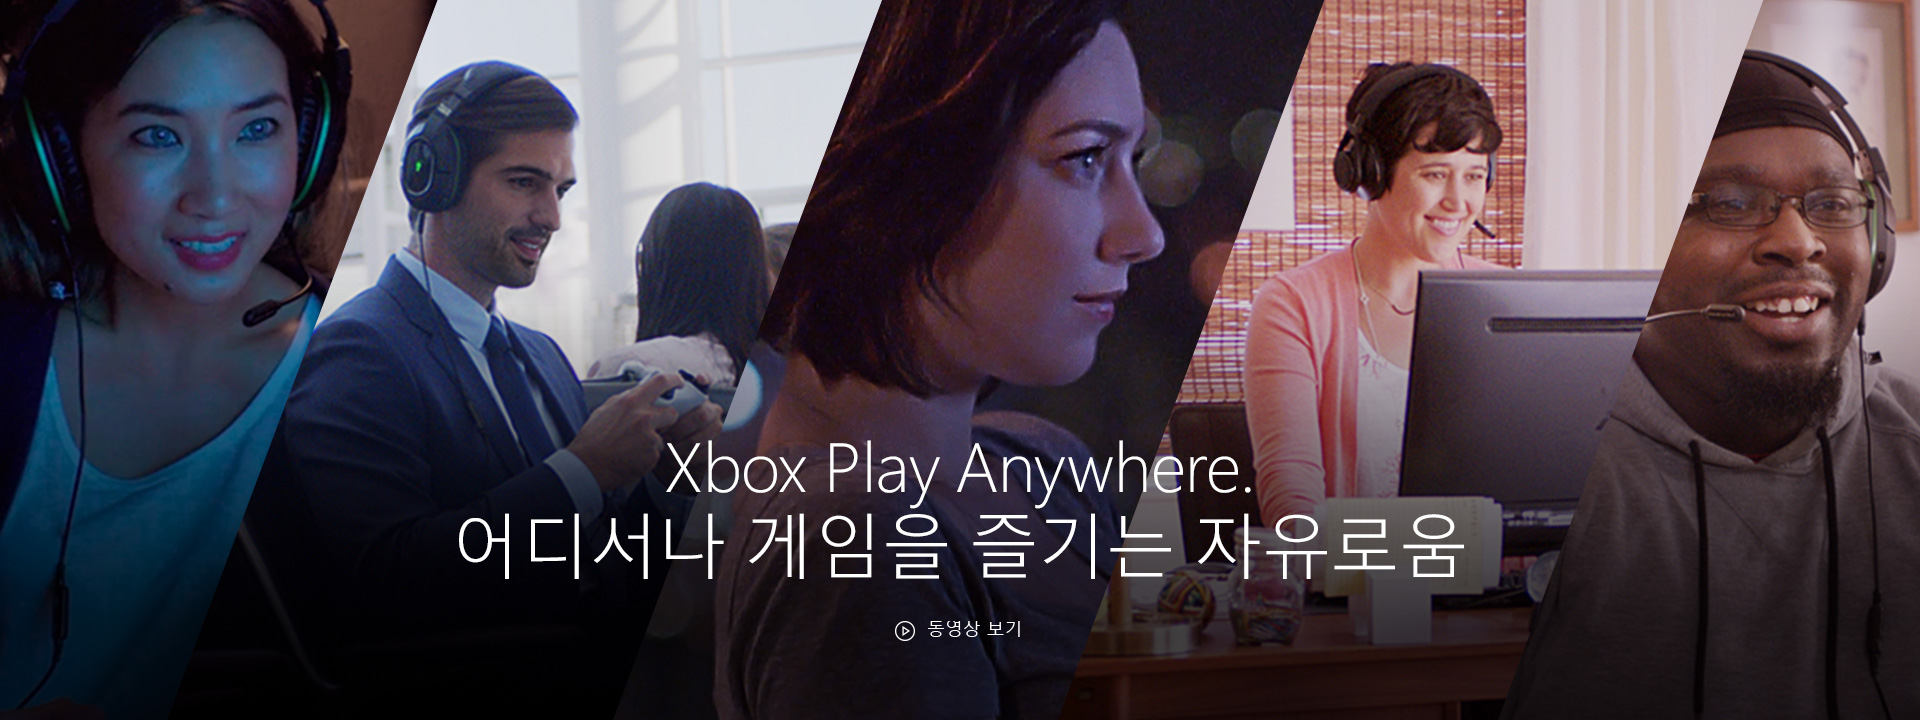 how to xbox play antwhere